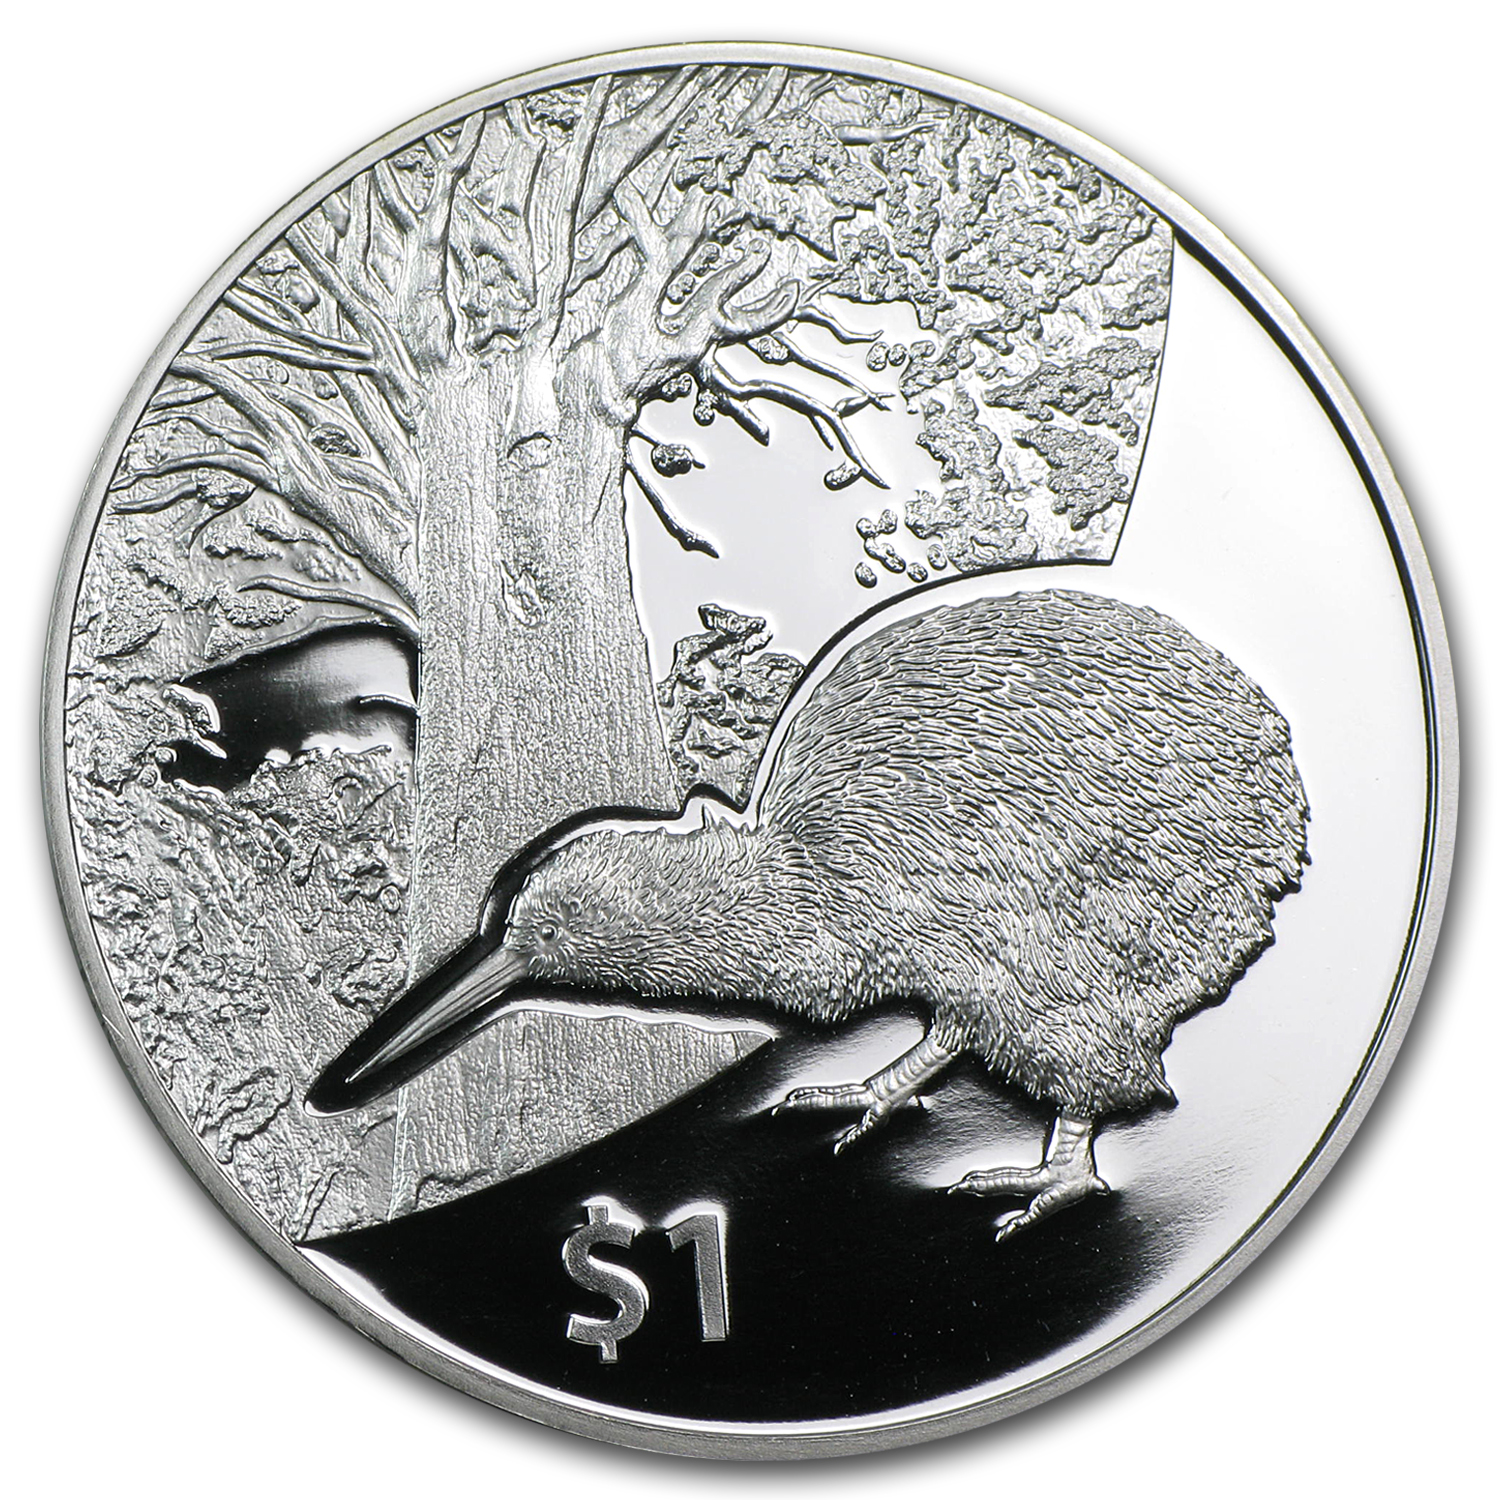 2013 1 oz Silver New Zealand Treasures $1 Kiwi Proof